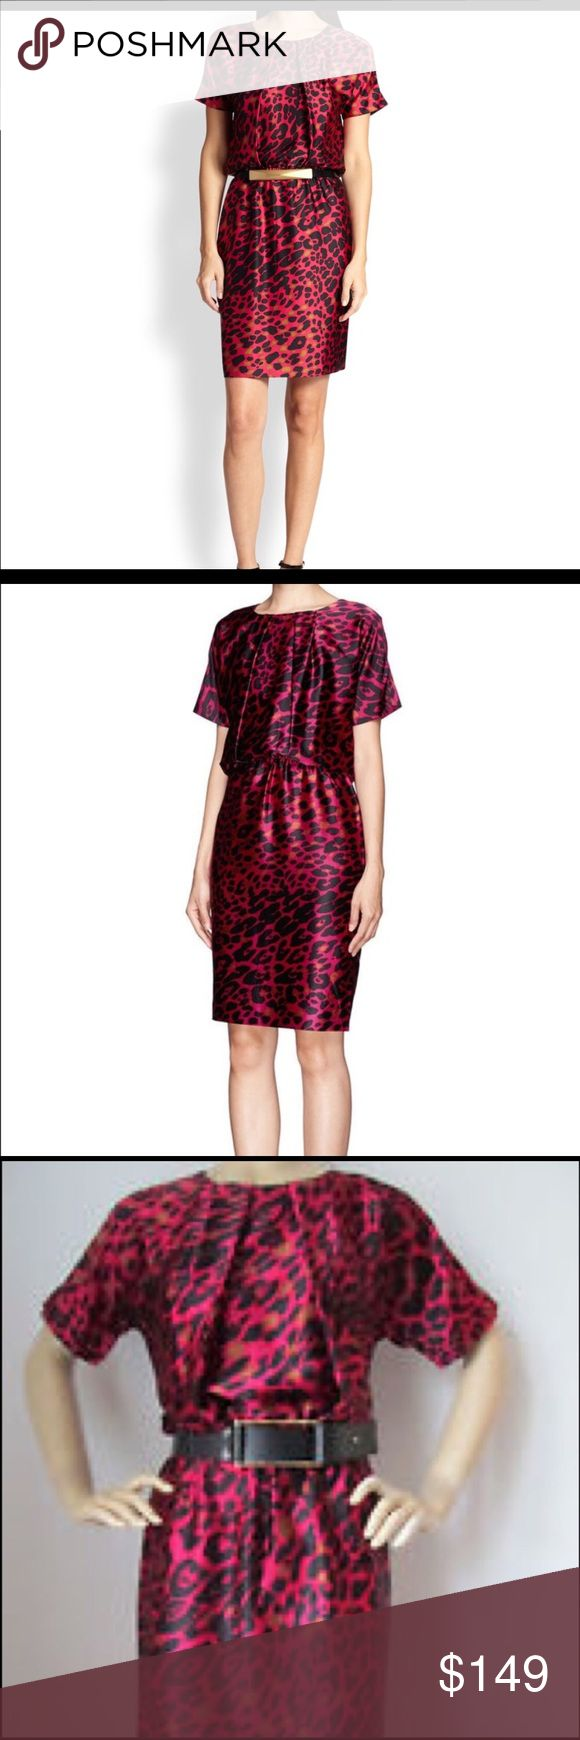 St. John Silk Dress Luxurious and completely gorgeous! LIKE NEW!! Raspberry, black and gold animal print. Silk. Fully lined. St. John Dresses